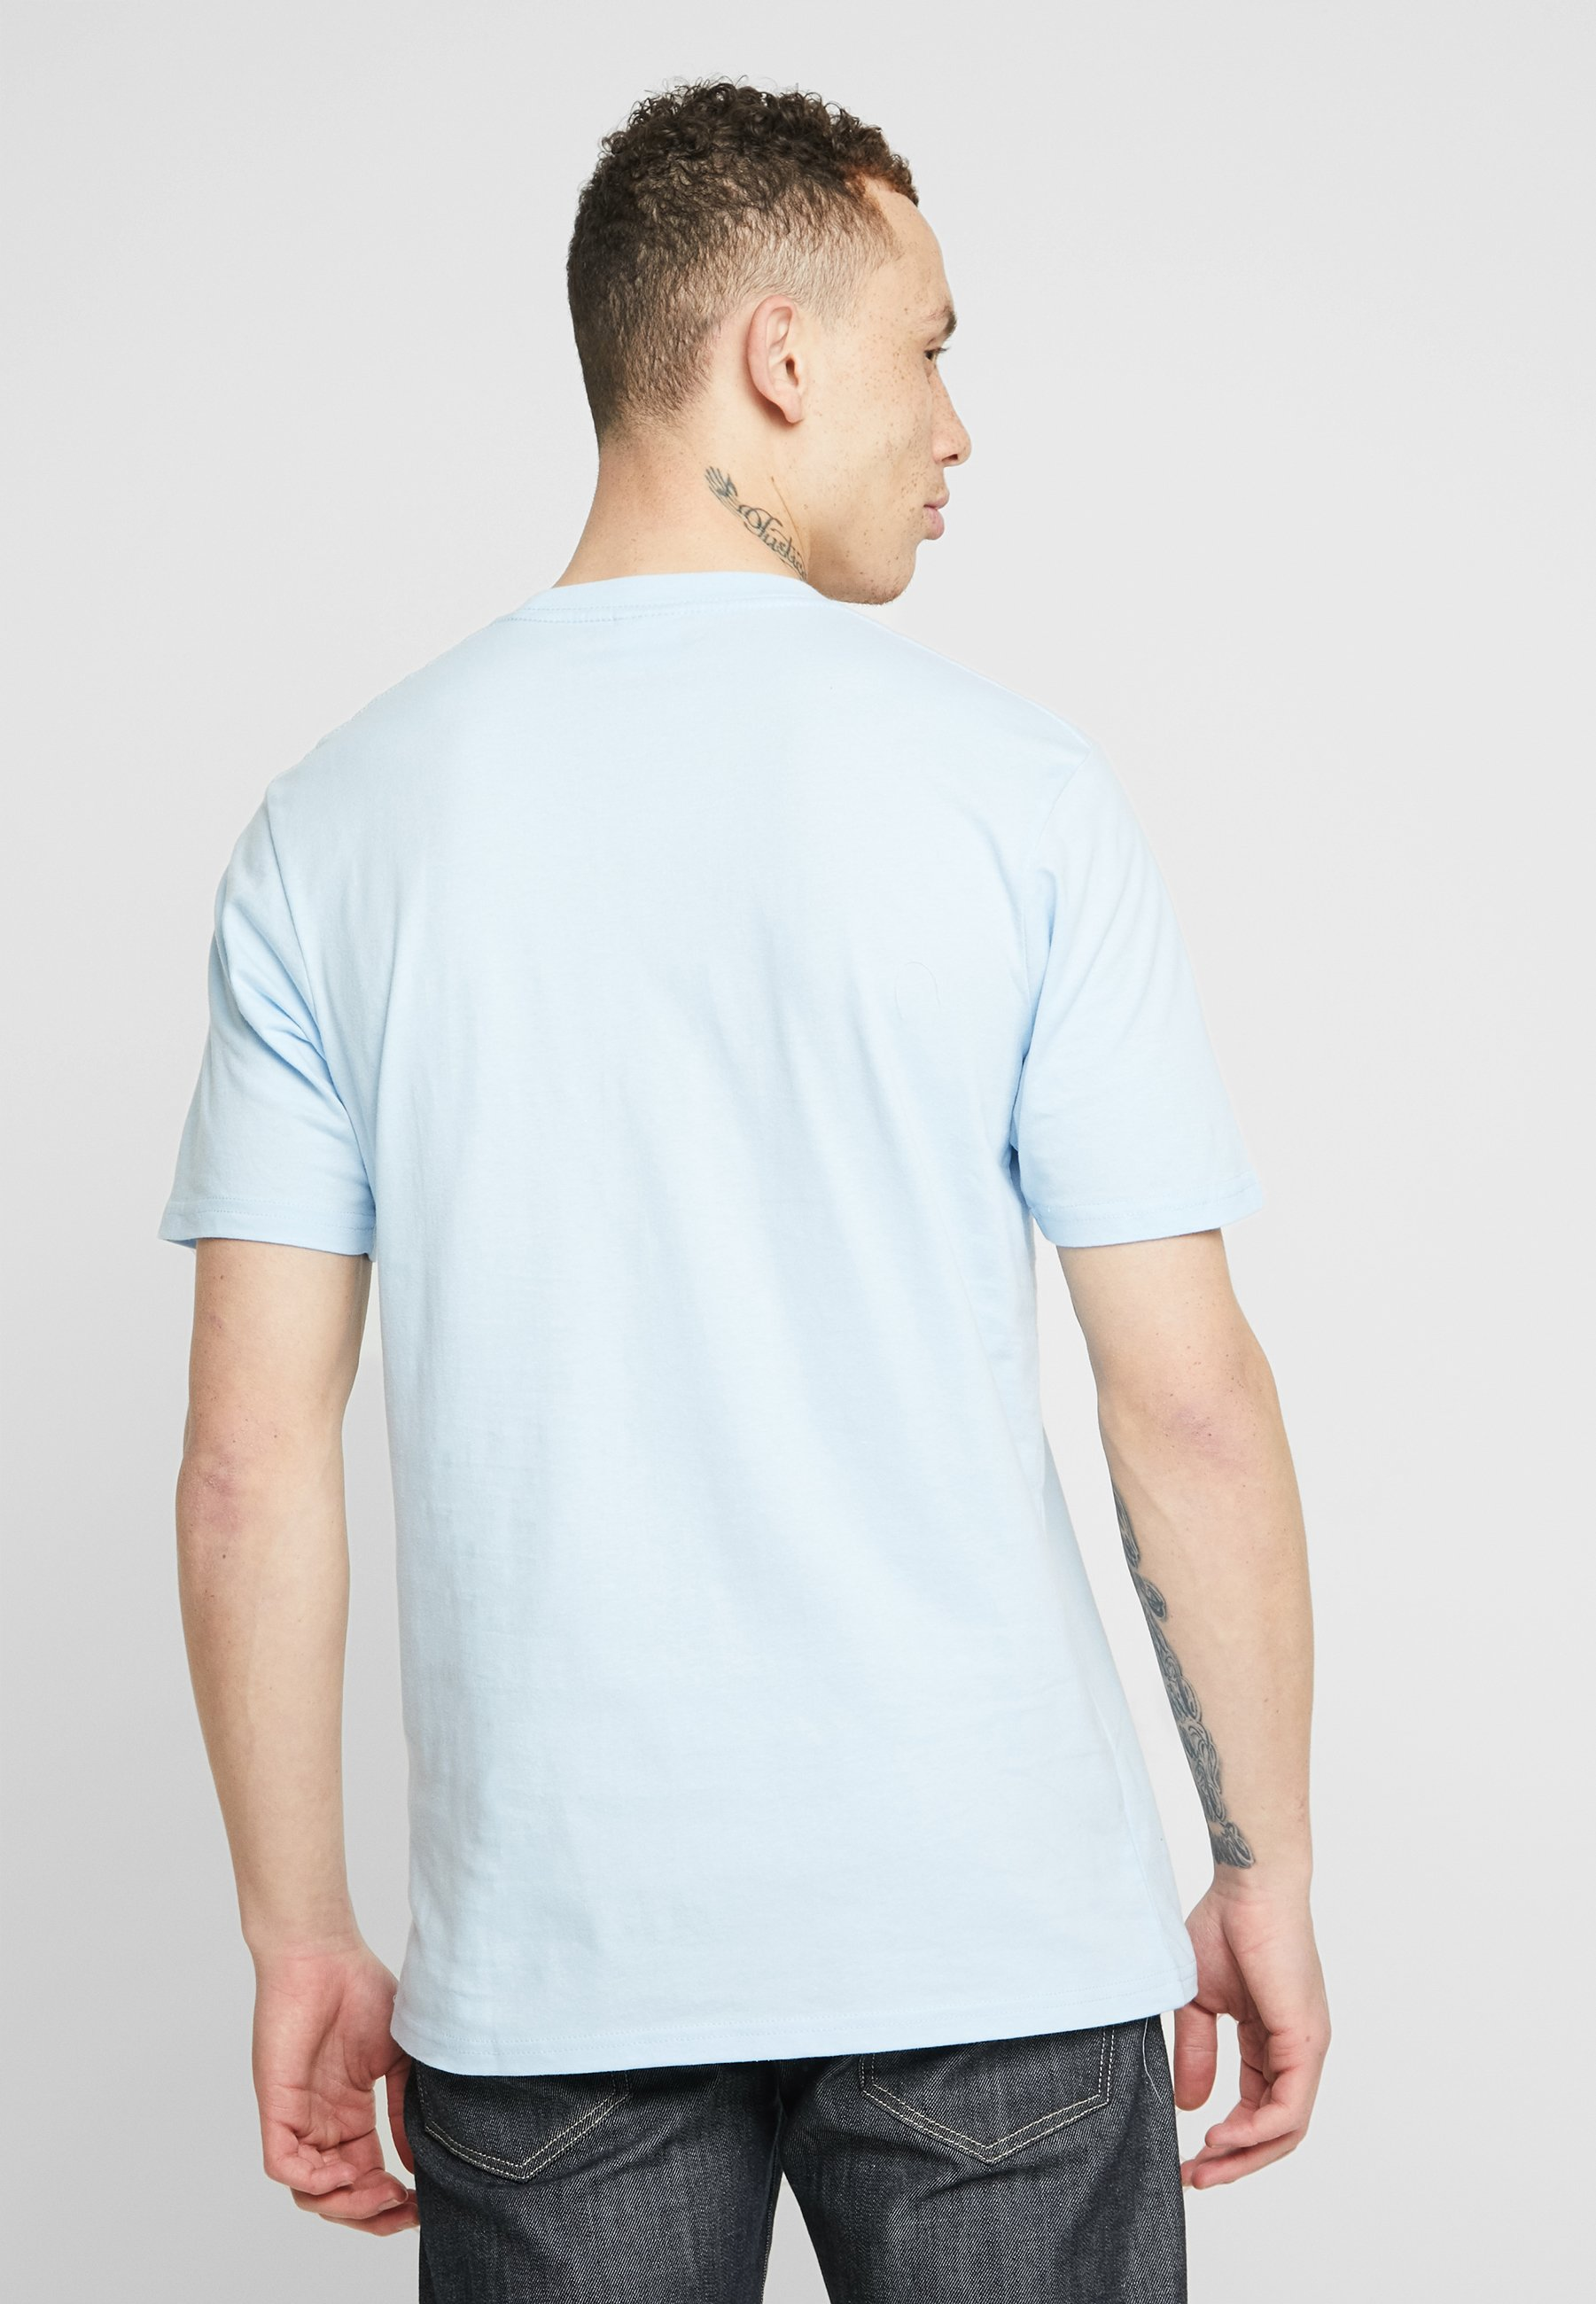 shirt Cotton Blue Con On ArtT Stampa Mist dtsQrChx